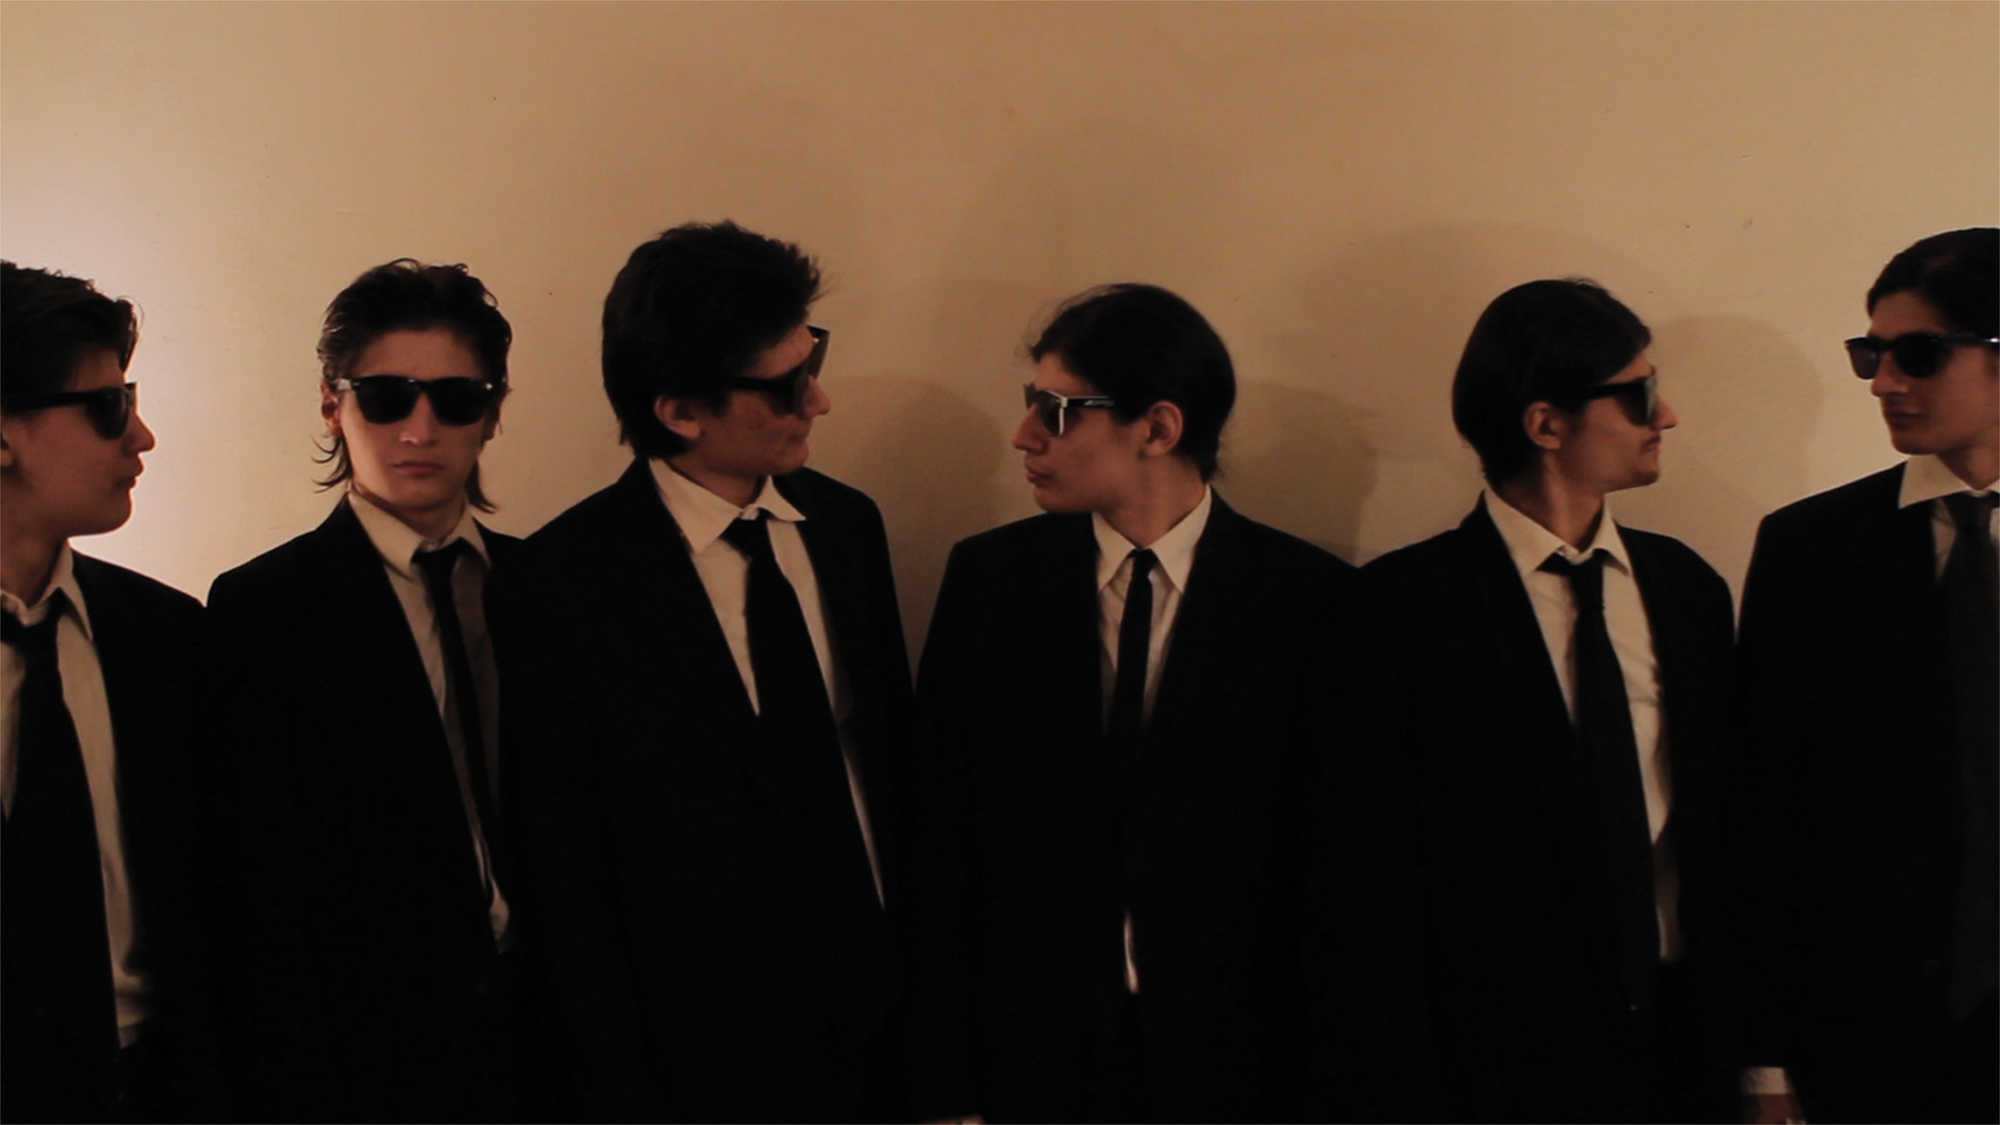 The Wolfpack (image 1)